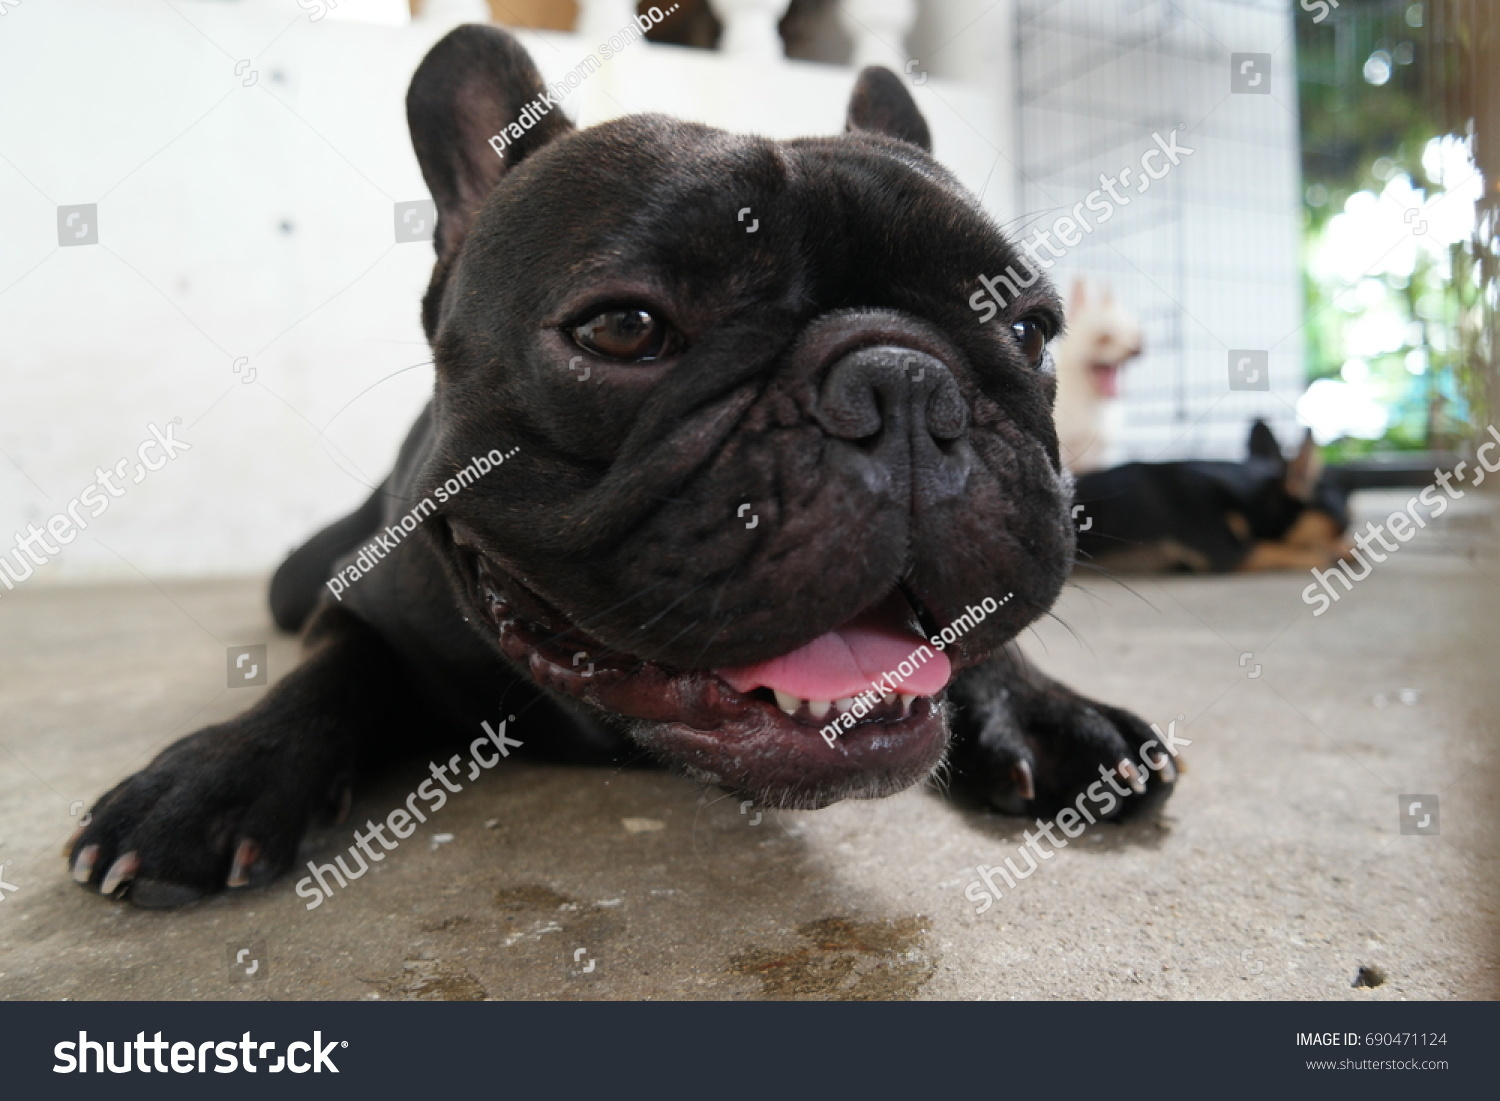 Top Bulldog Black Adorable Dog - stock-photo-close-up-french-bulldog-face-black-dog-lying-on-floor-cute-dog-690471124  2018_30859  .jpg